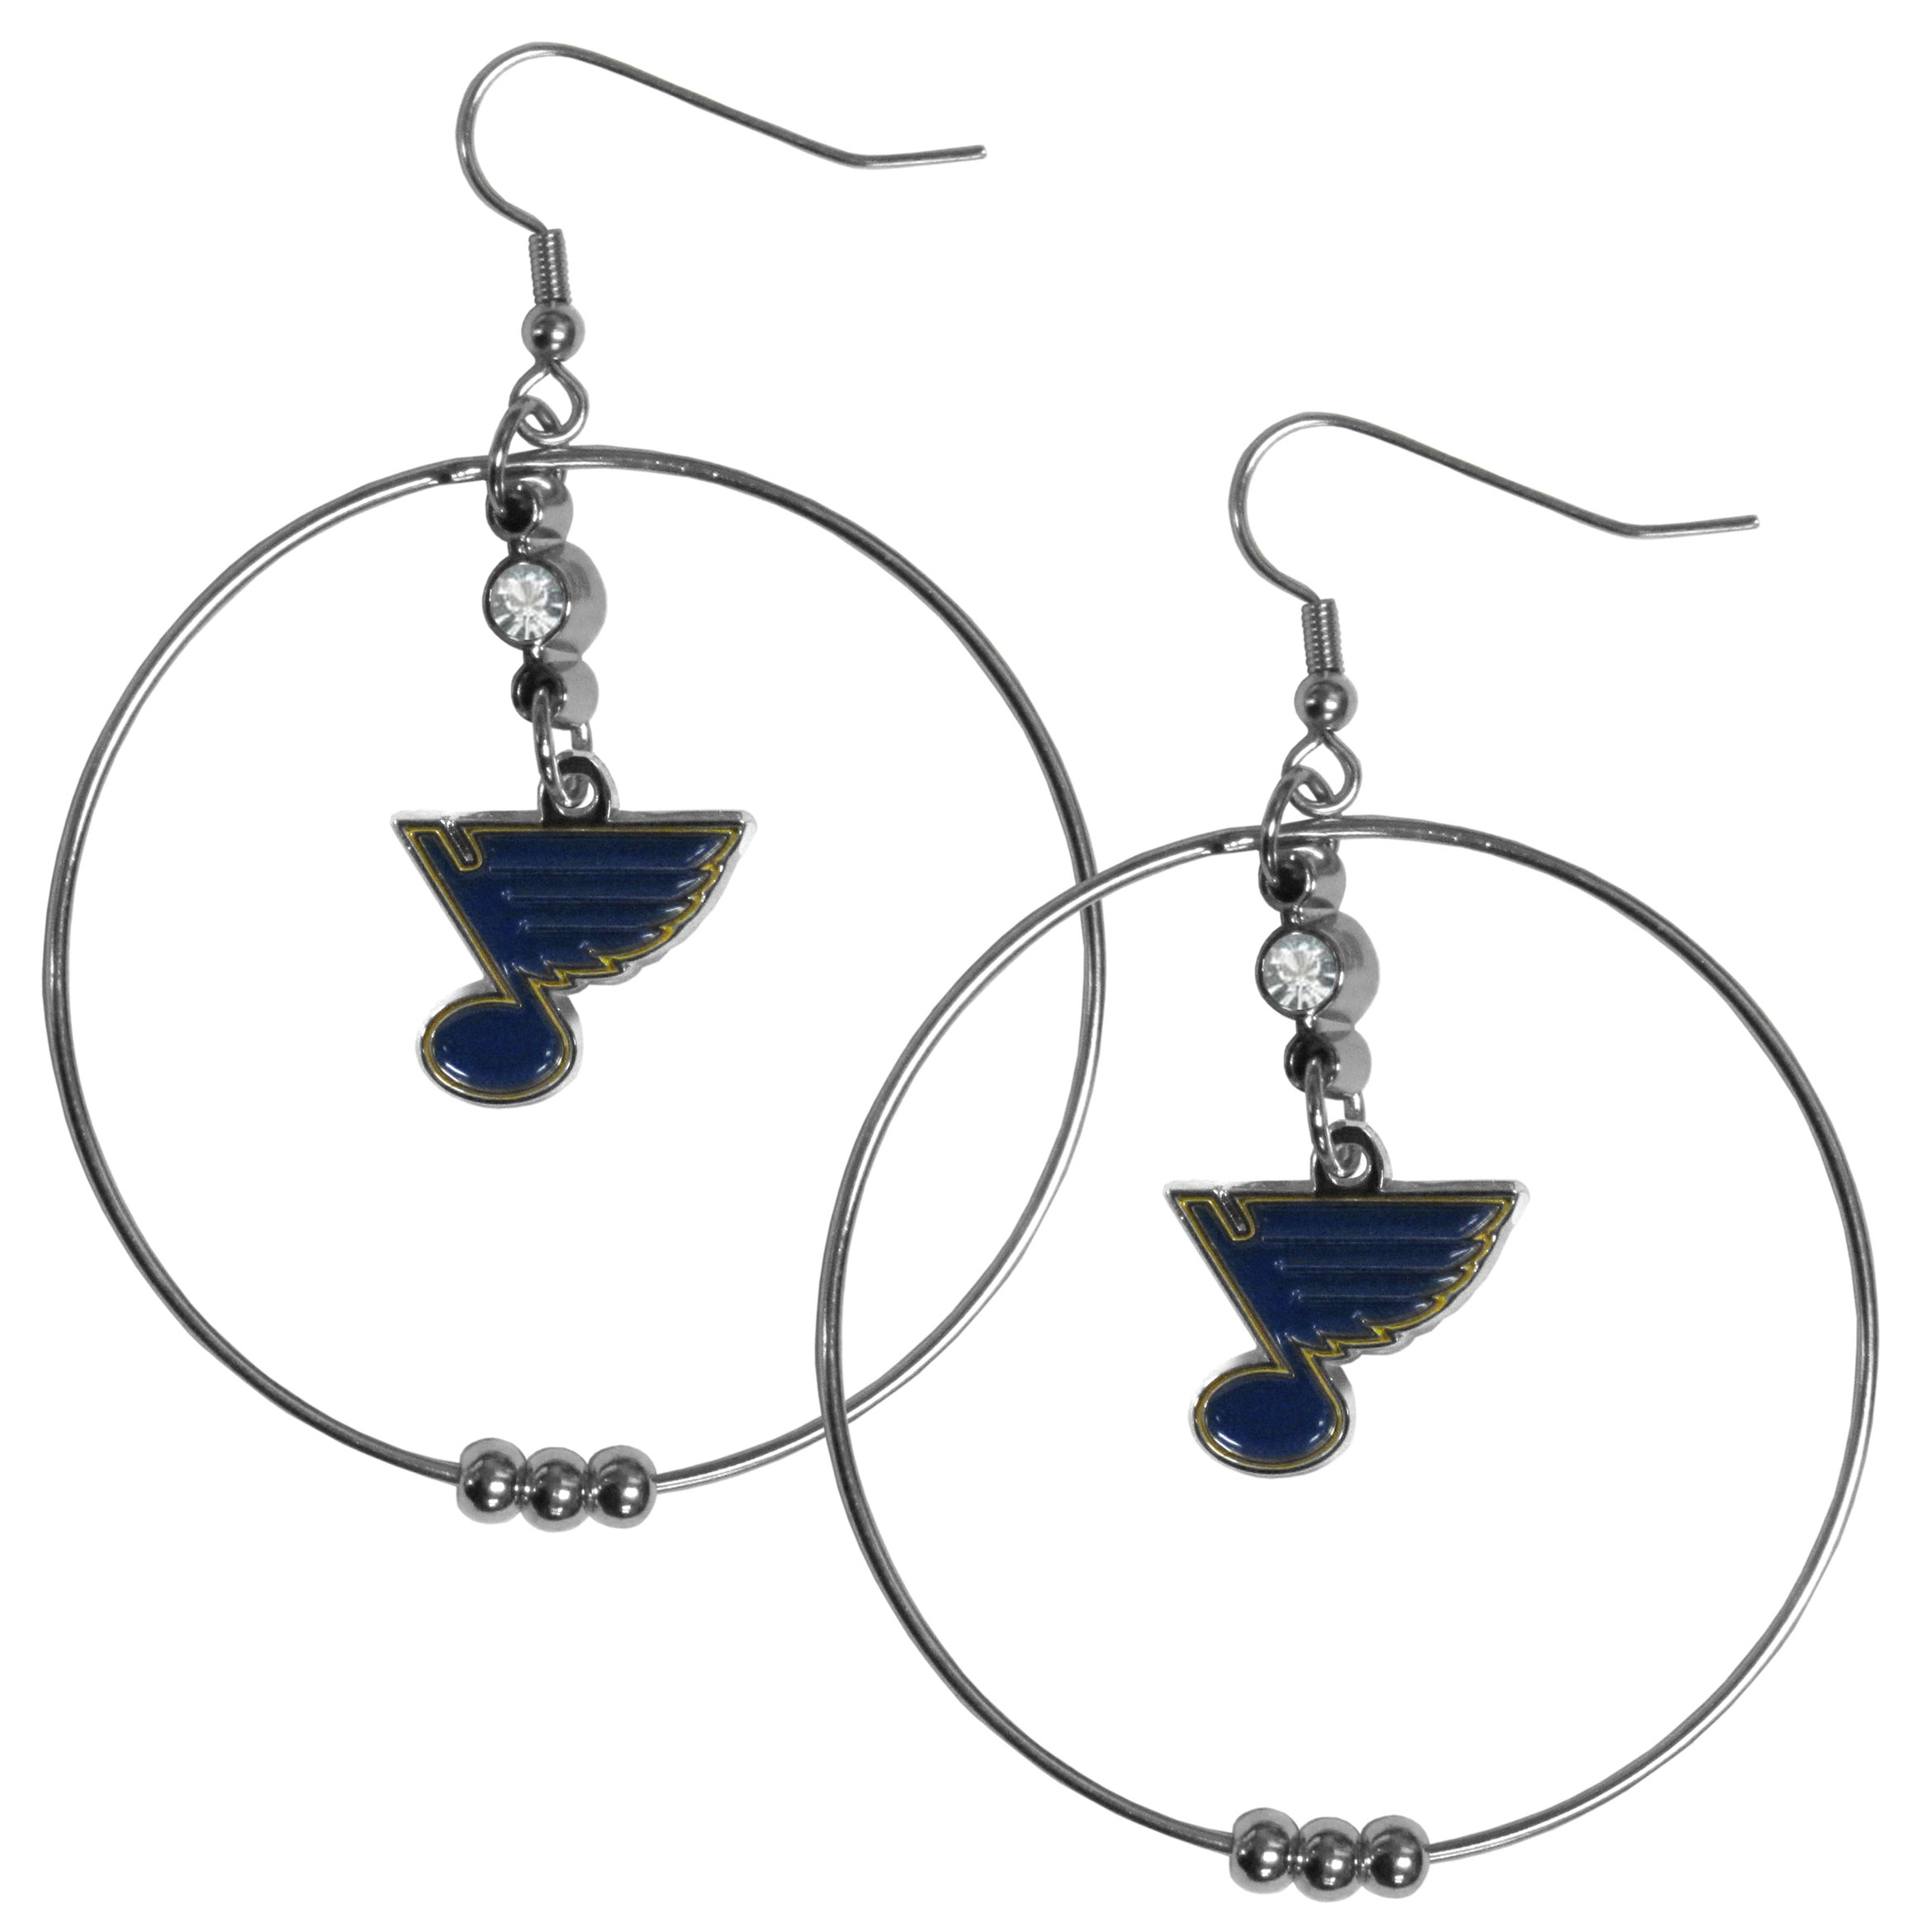 St. Louis Blues® 2 Inch Hoop Earrings - Our large hoop earrings have a fully cast and enameled St. Louis Blues® charm with enameled detail and a high polish nickel free chrome finish and rhinestone access. Hypoallergenic fishhook posts.